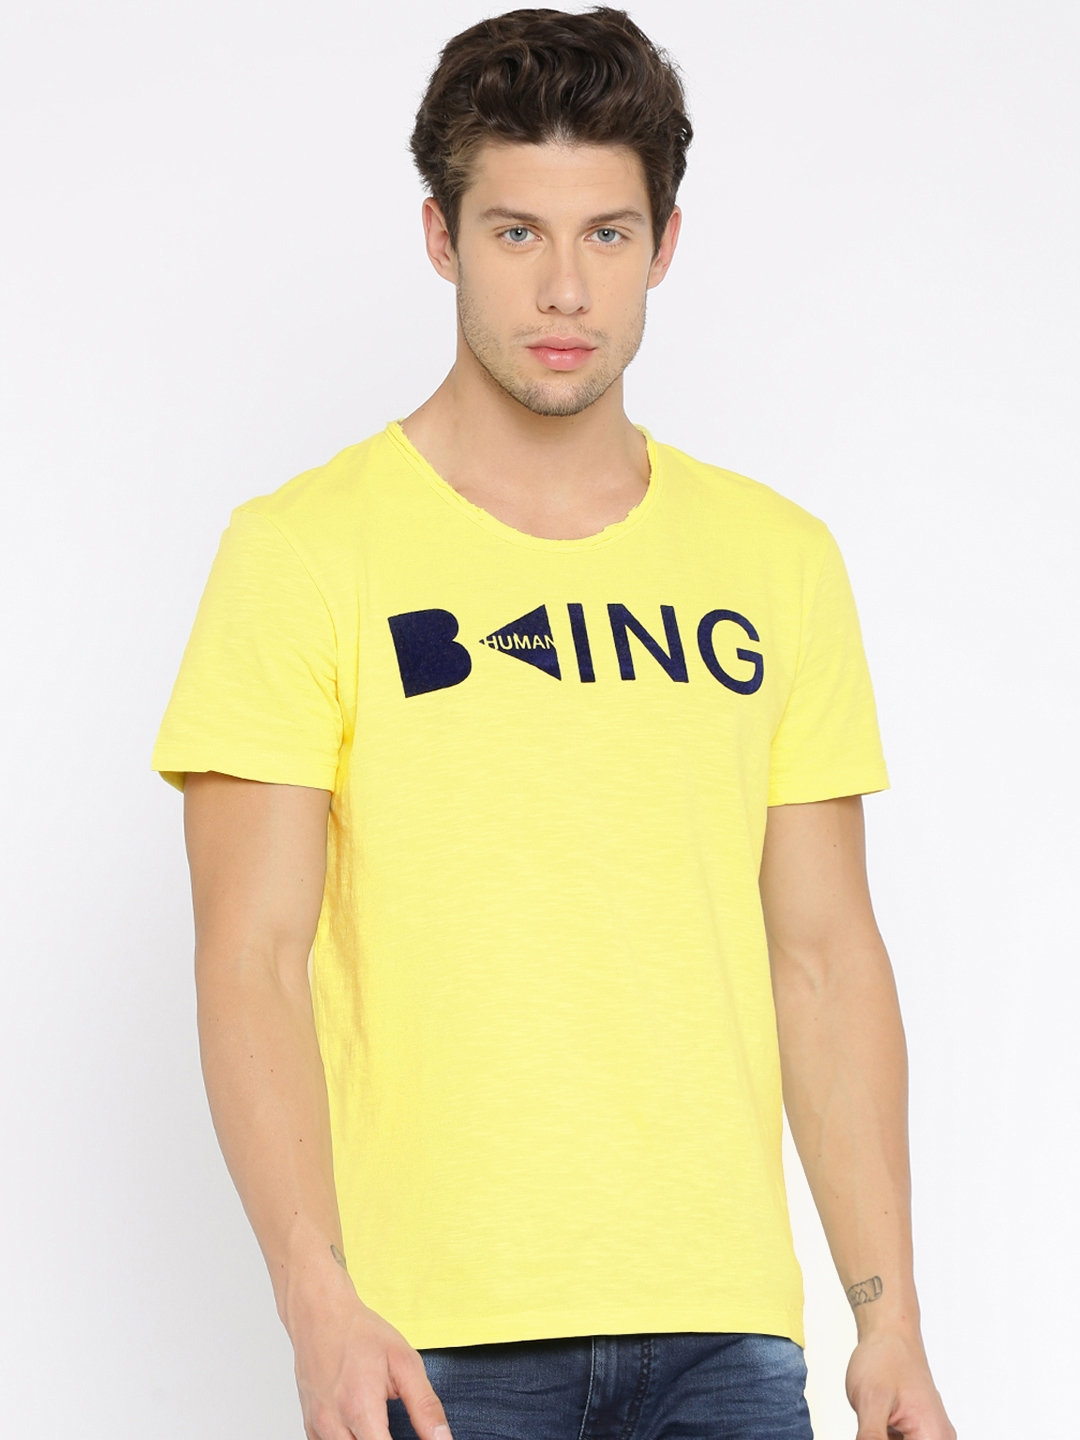 561911d6ad634d Buy Being Human Clothing Men Yellow Printed Round Neck T Shirt ...